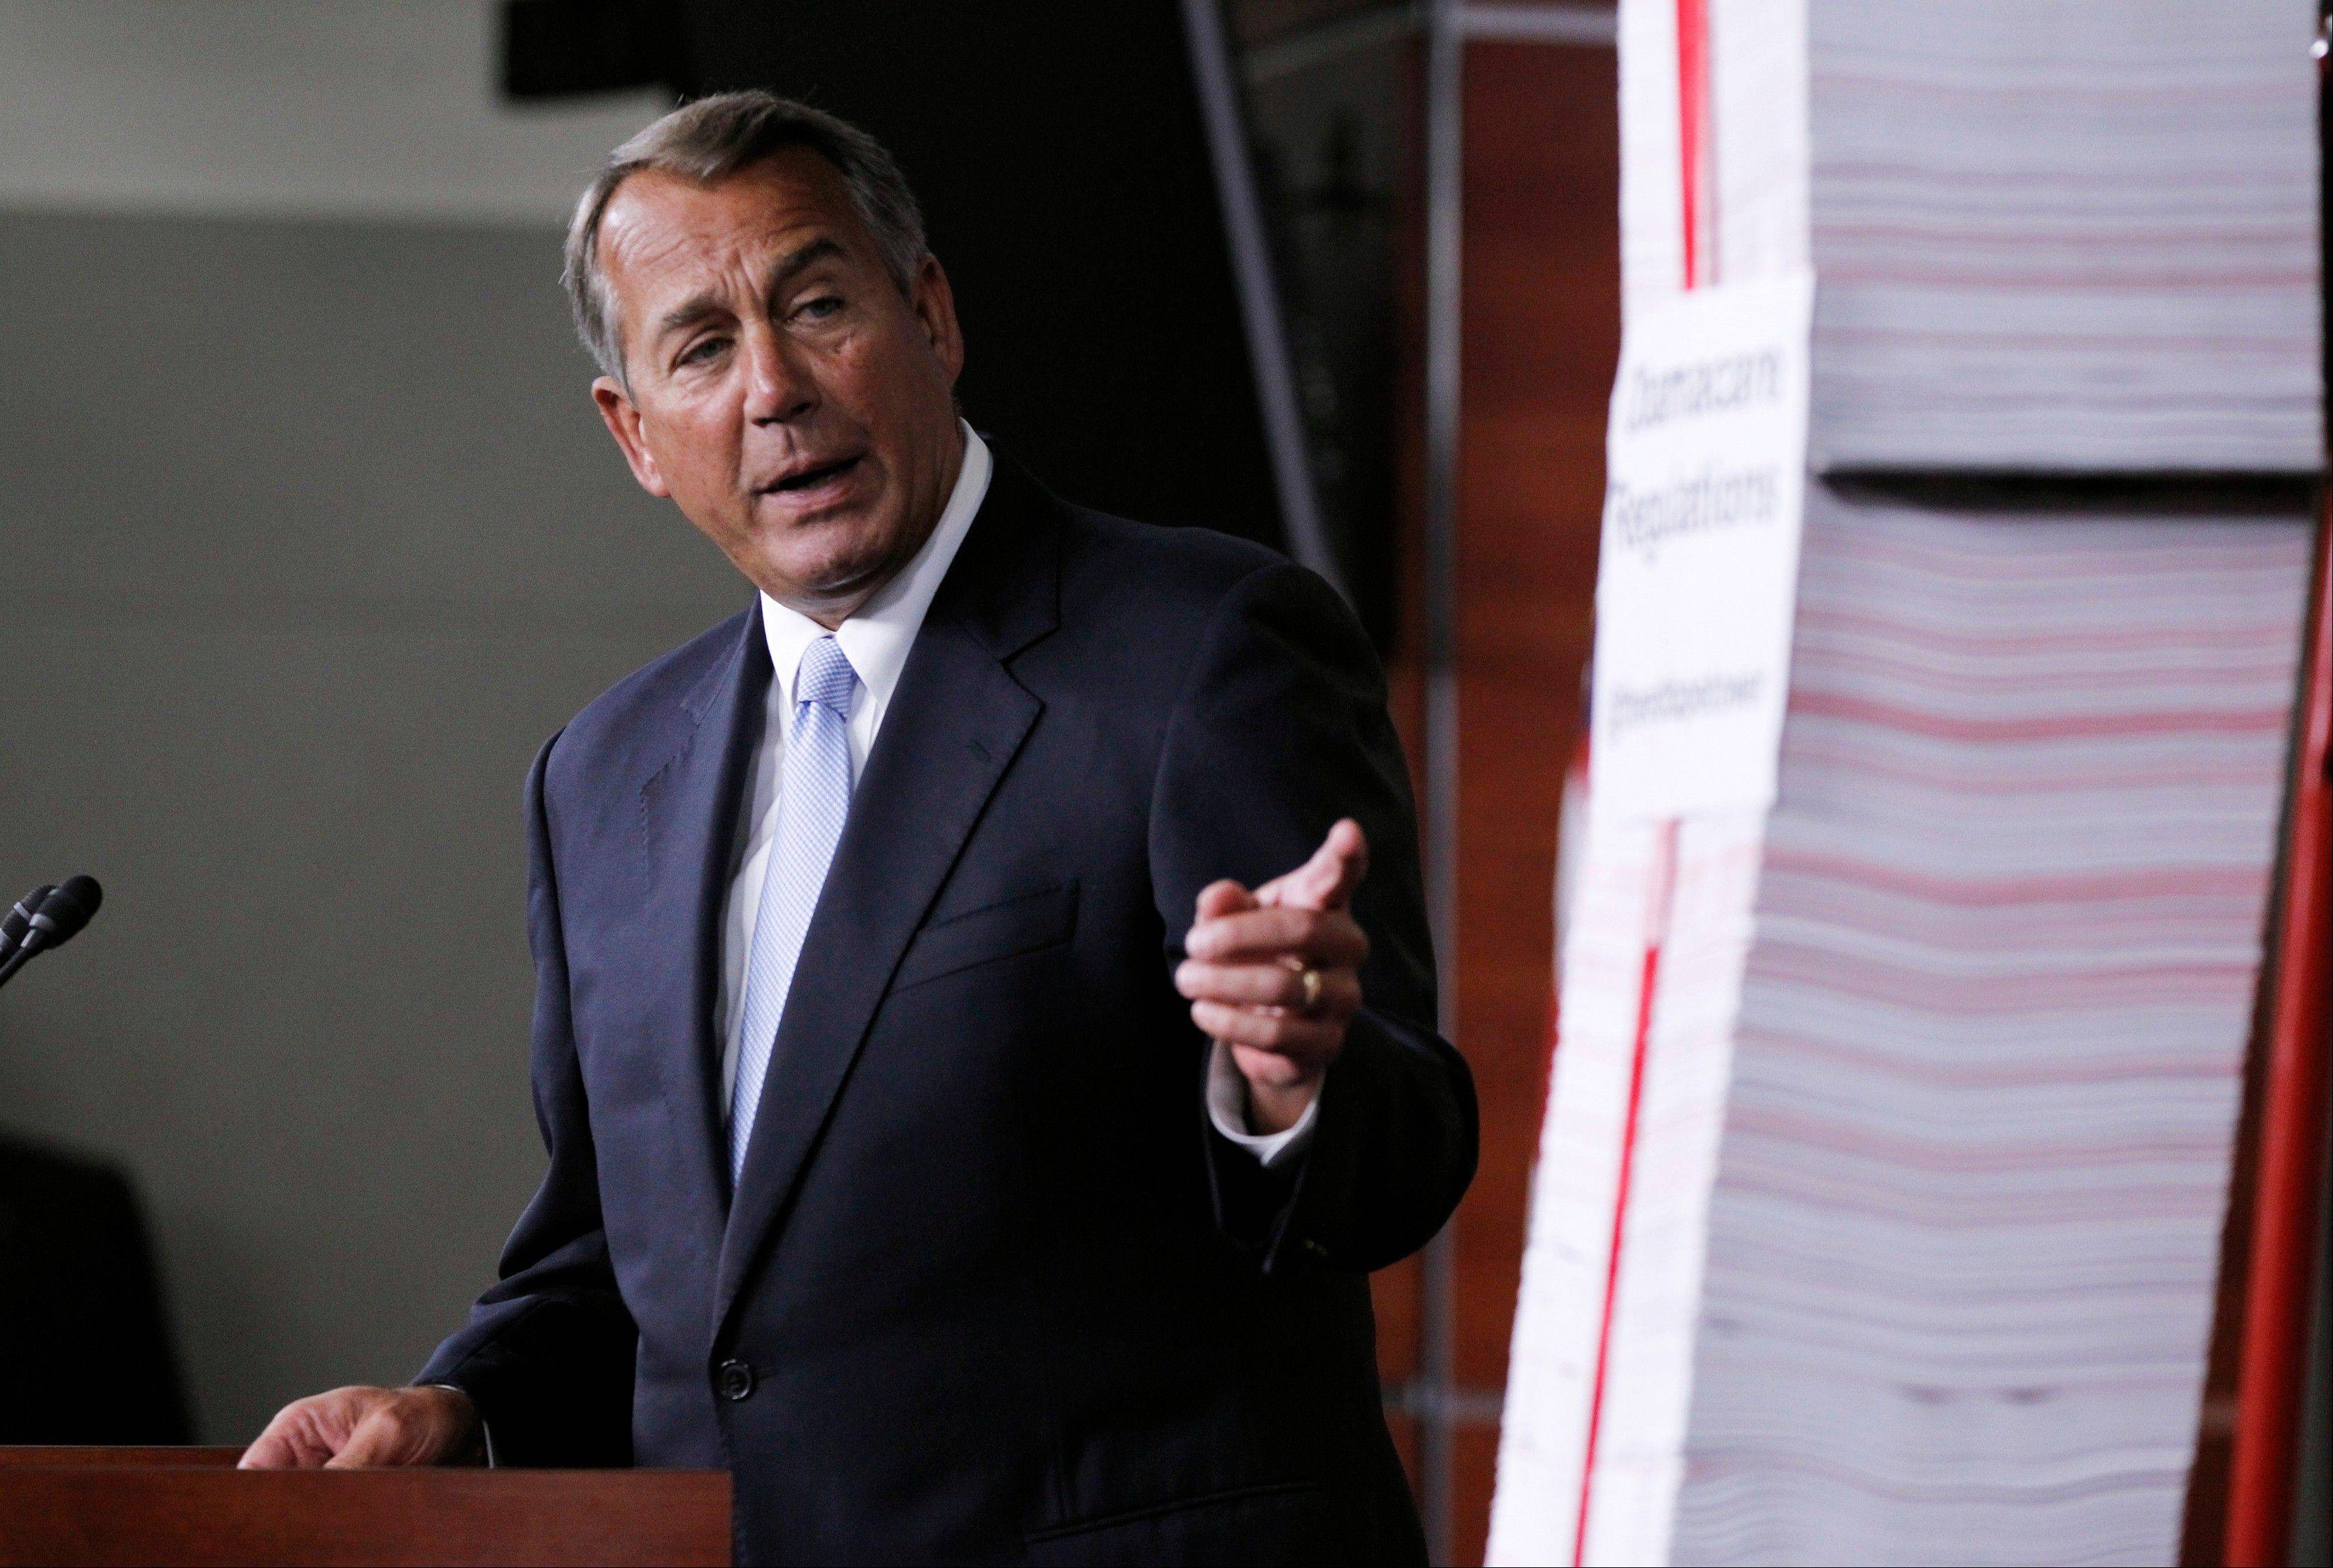 Republicans see 'Obamacare' issues as key to 2014